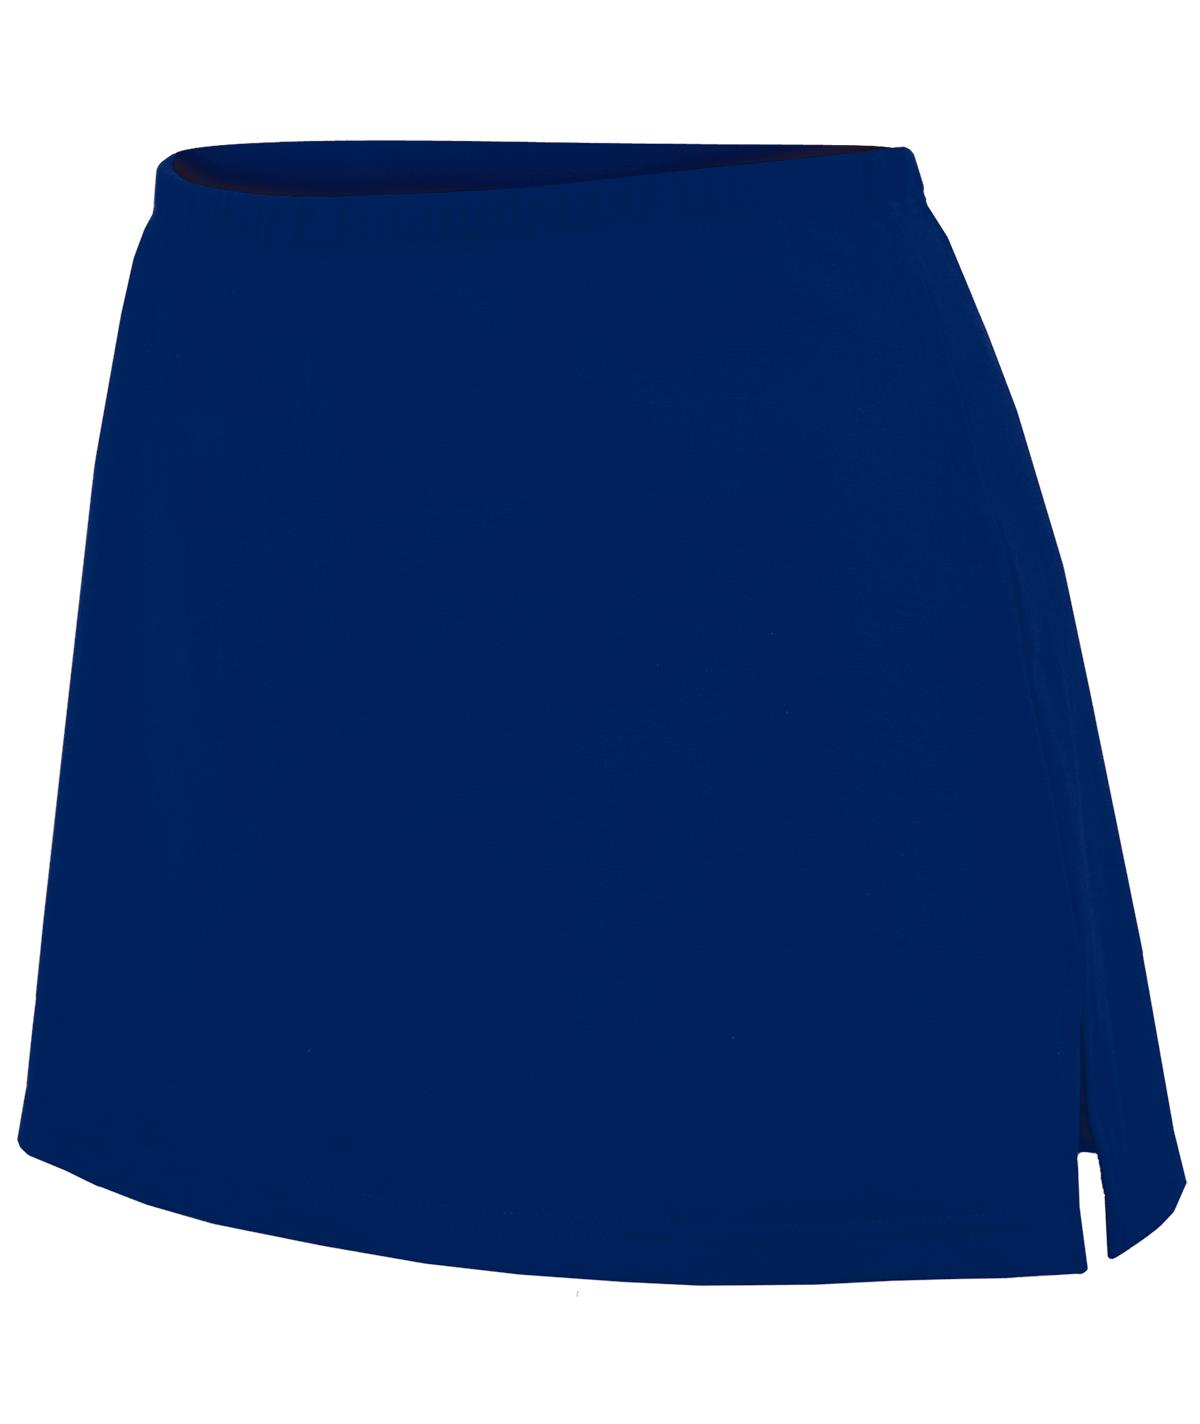 Chassé Skirt with Built-In Short